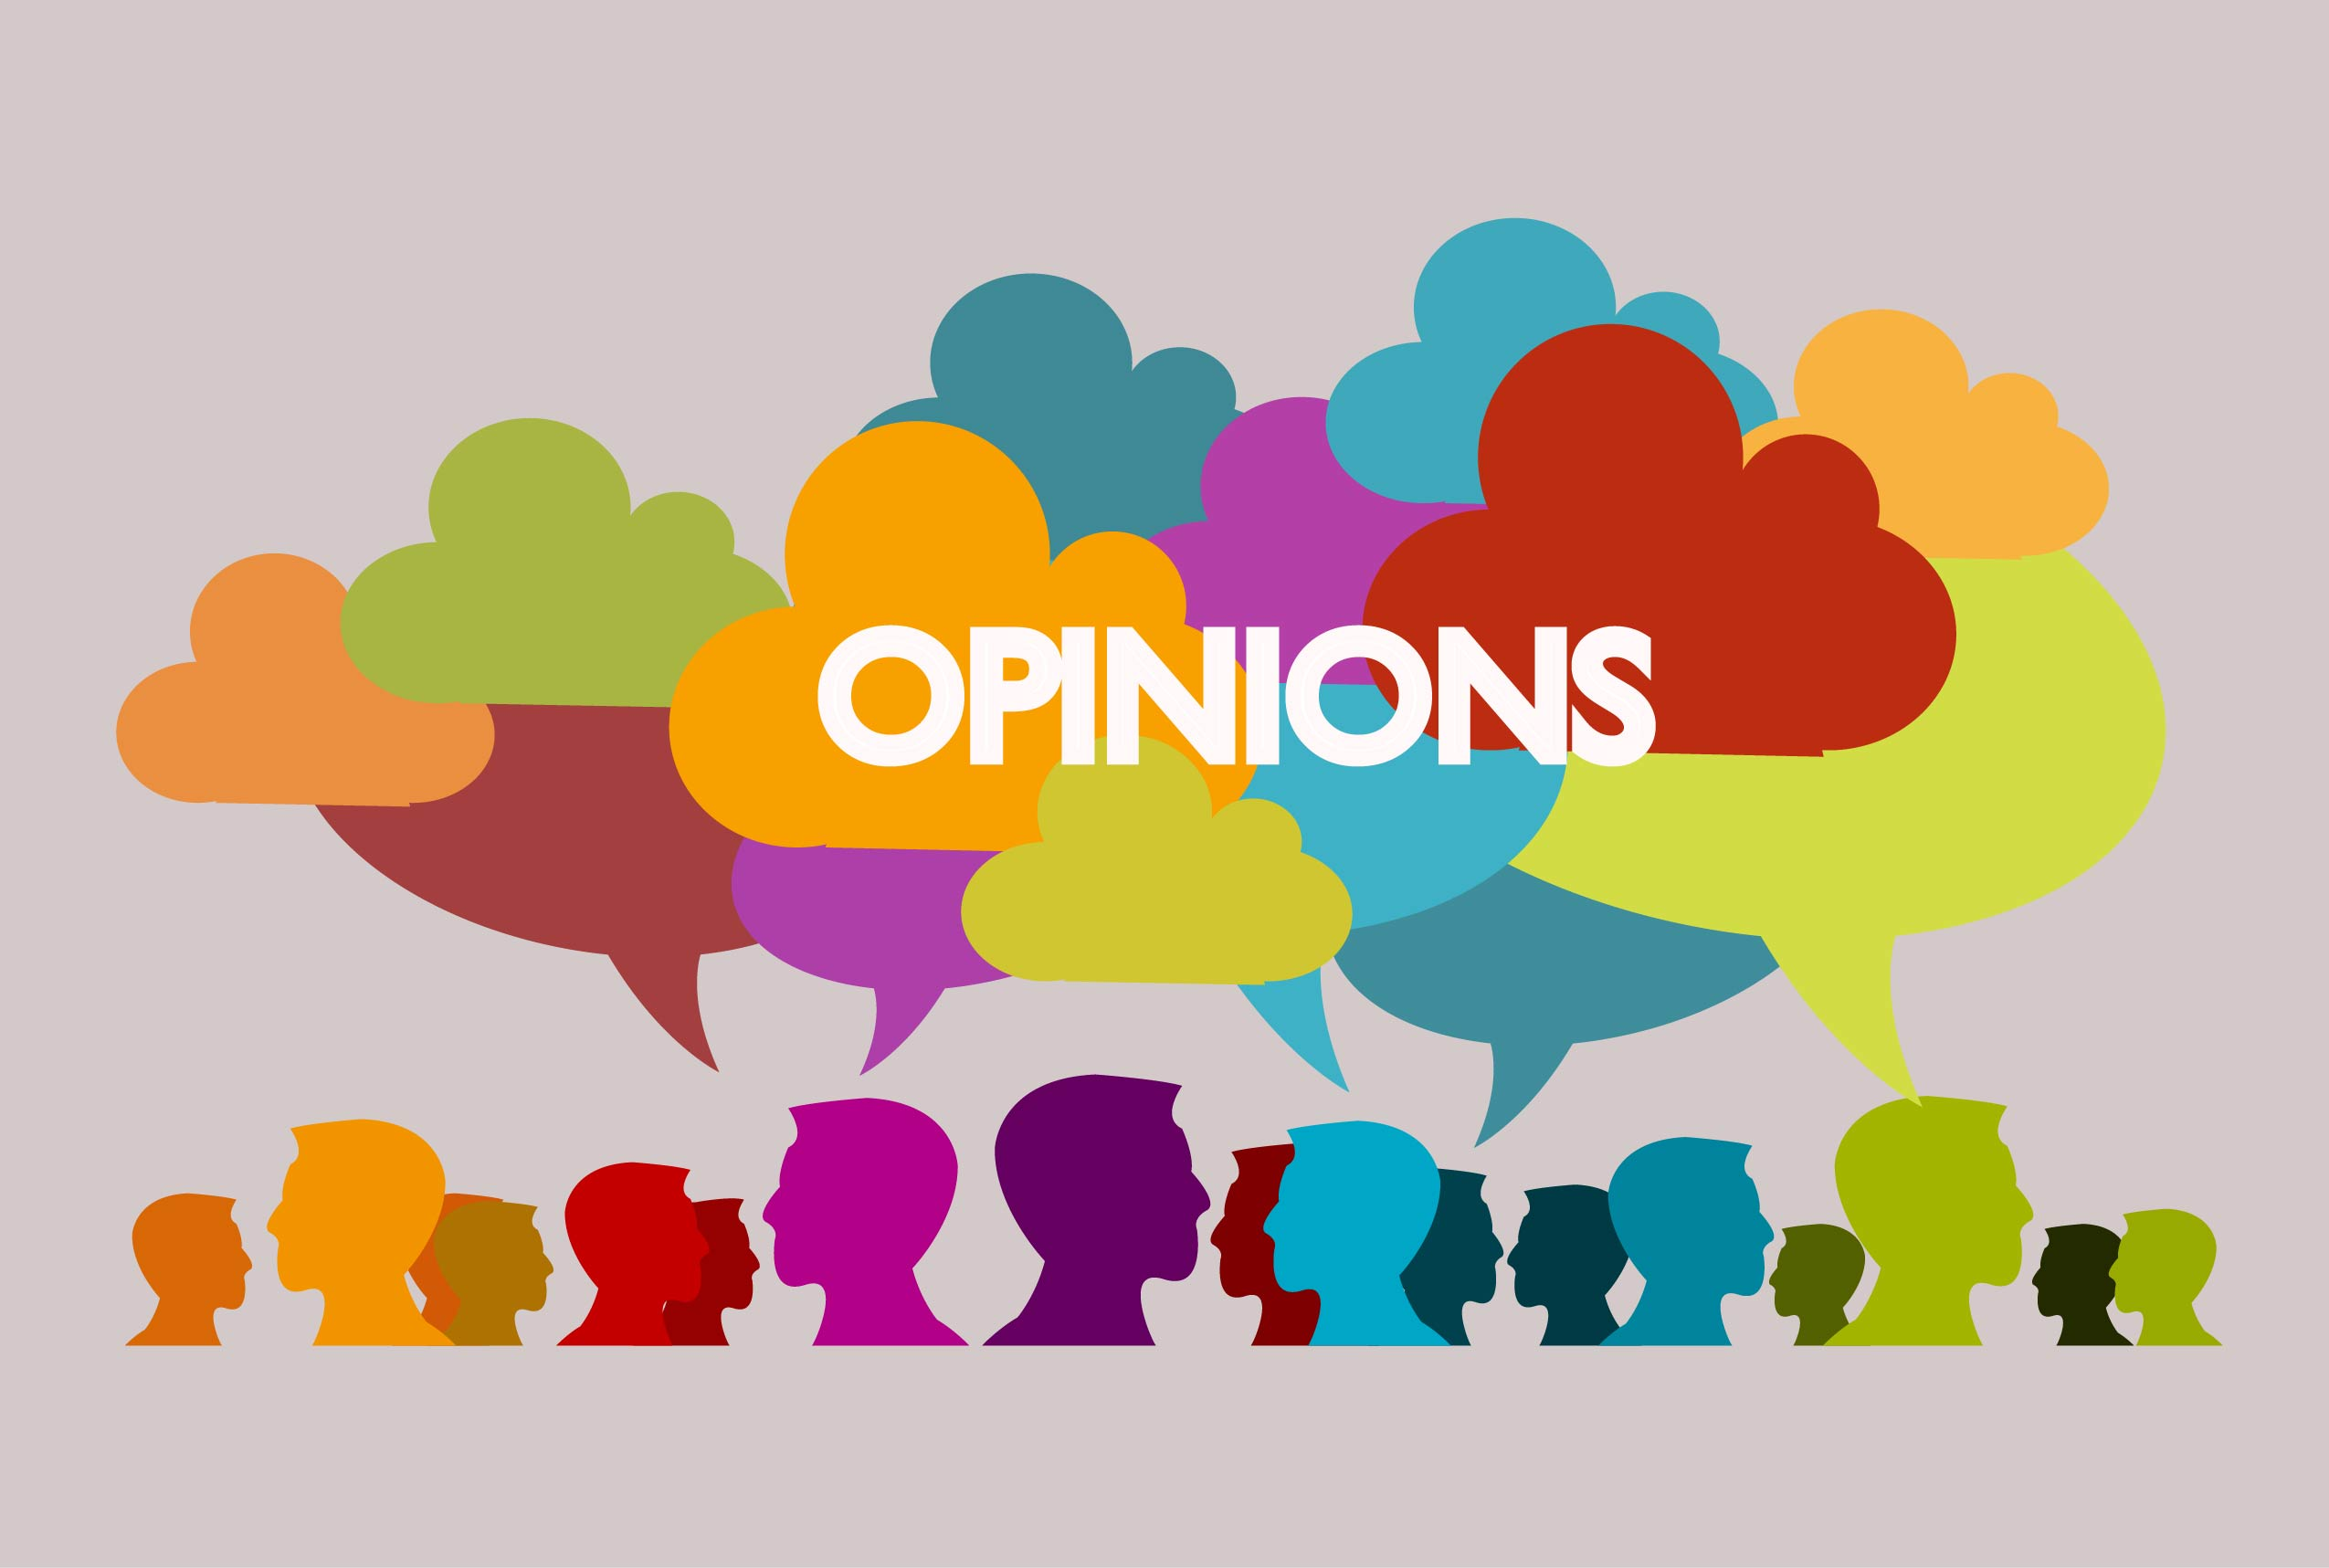 Are our opinions influenced?.